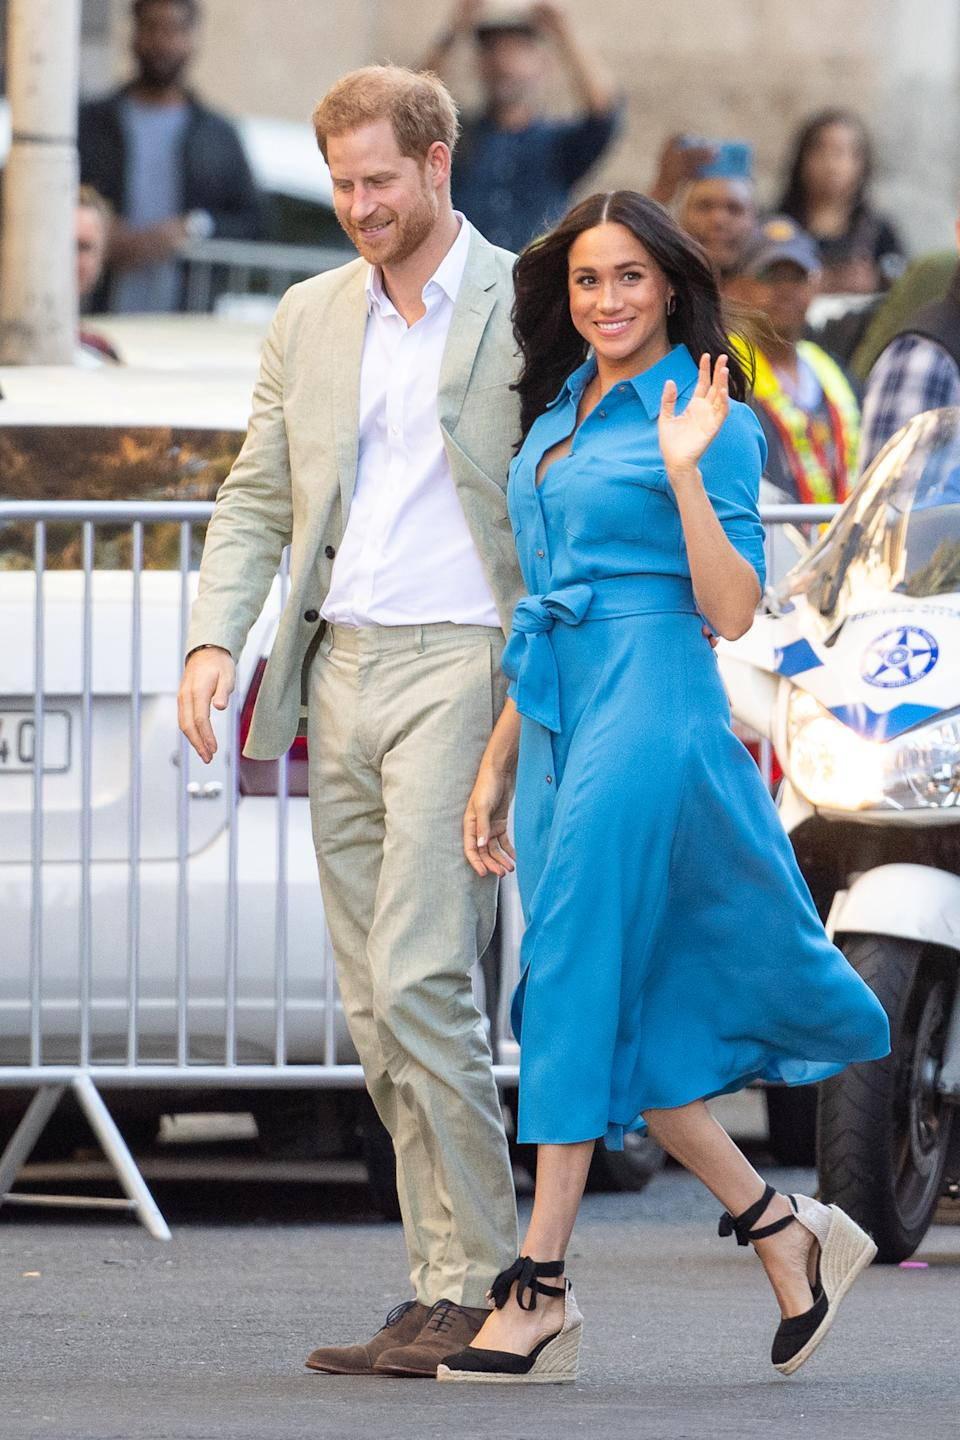 """Meghan wore a £525 belted Veronica Beard shirt dress for her second outfit on day one of the royal tour. It wasn't a new look: the Duchess first wore the dress while visiting Tonga with Prince Harry last year. The dress is sold out in blue, but limited sizes are still available in the red and it's on sale for £210. <a href=""""https://fave.co/2m6h4t2"""" rel=""""nofollow noopener"""" target=""""_blank"""" data-ylk=""""slk:Shop now"""" class=""""link rapid-noclick-resp""""><strong>Shop now</strong></a><strong>.</strong> <em>[Photo: Getty Images]</em>"""